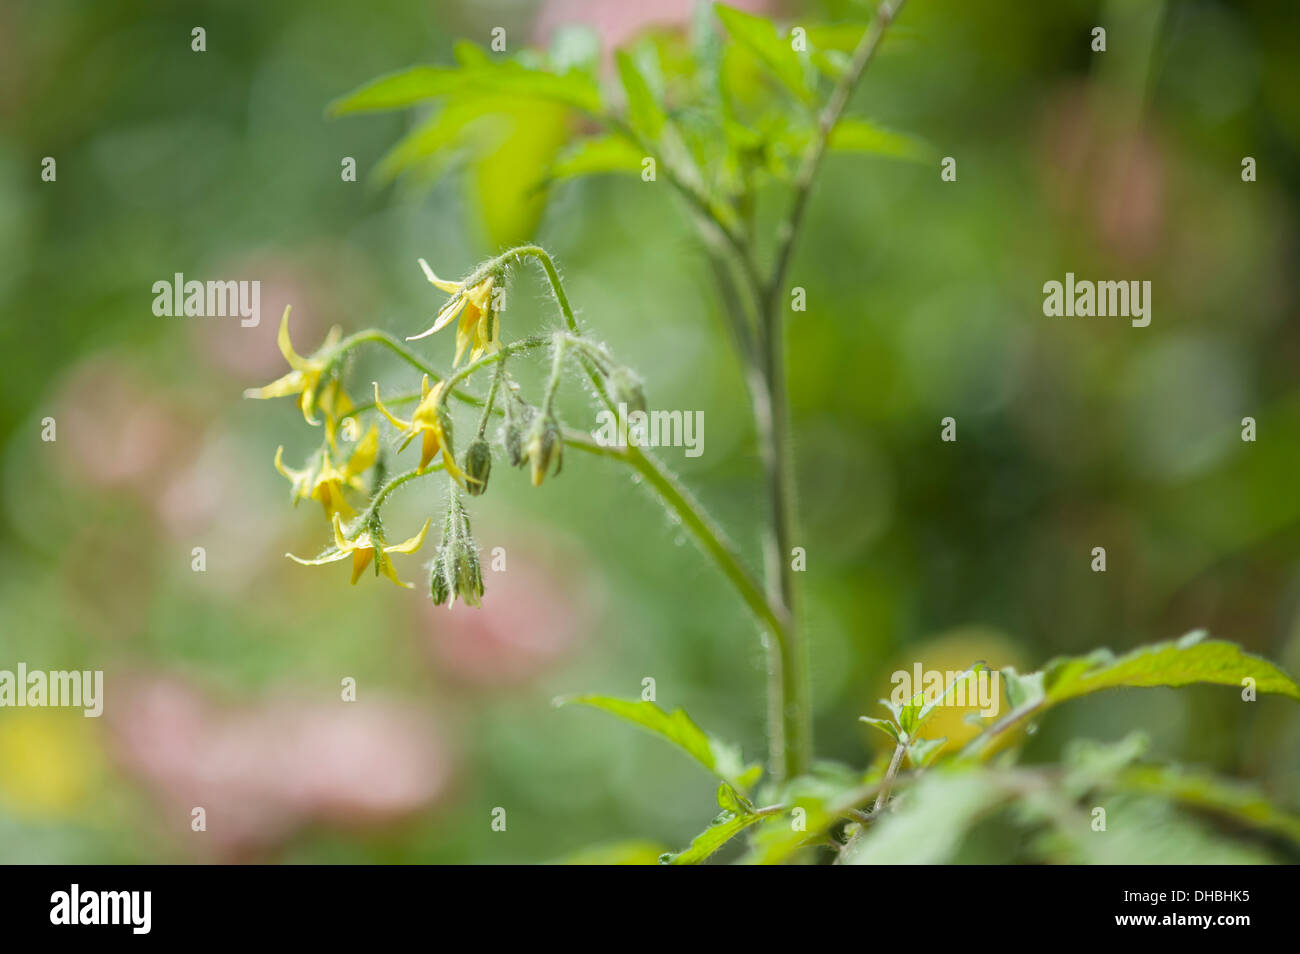 Tomato stalk flowers stock photos tomato stalk flowers stock tomato lycopersicon esculentum yellow plum yellow flowers and green foliage of growing mightylinksfo